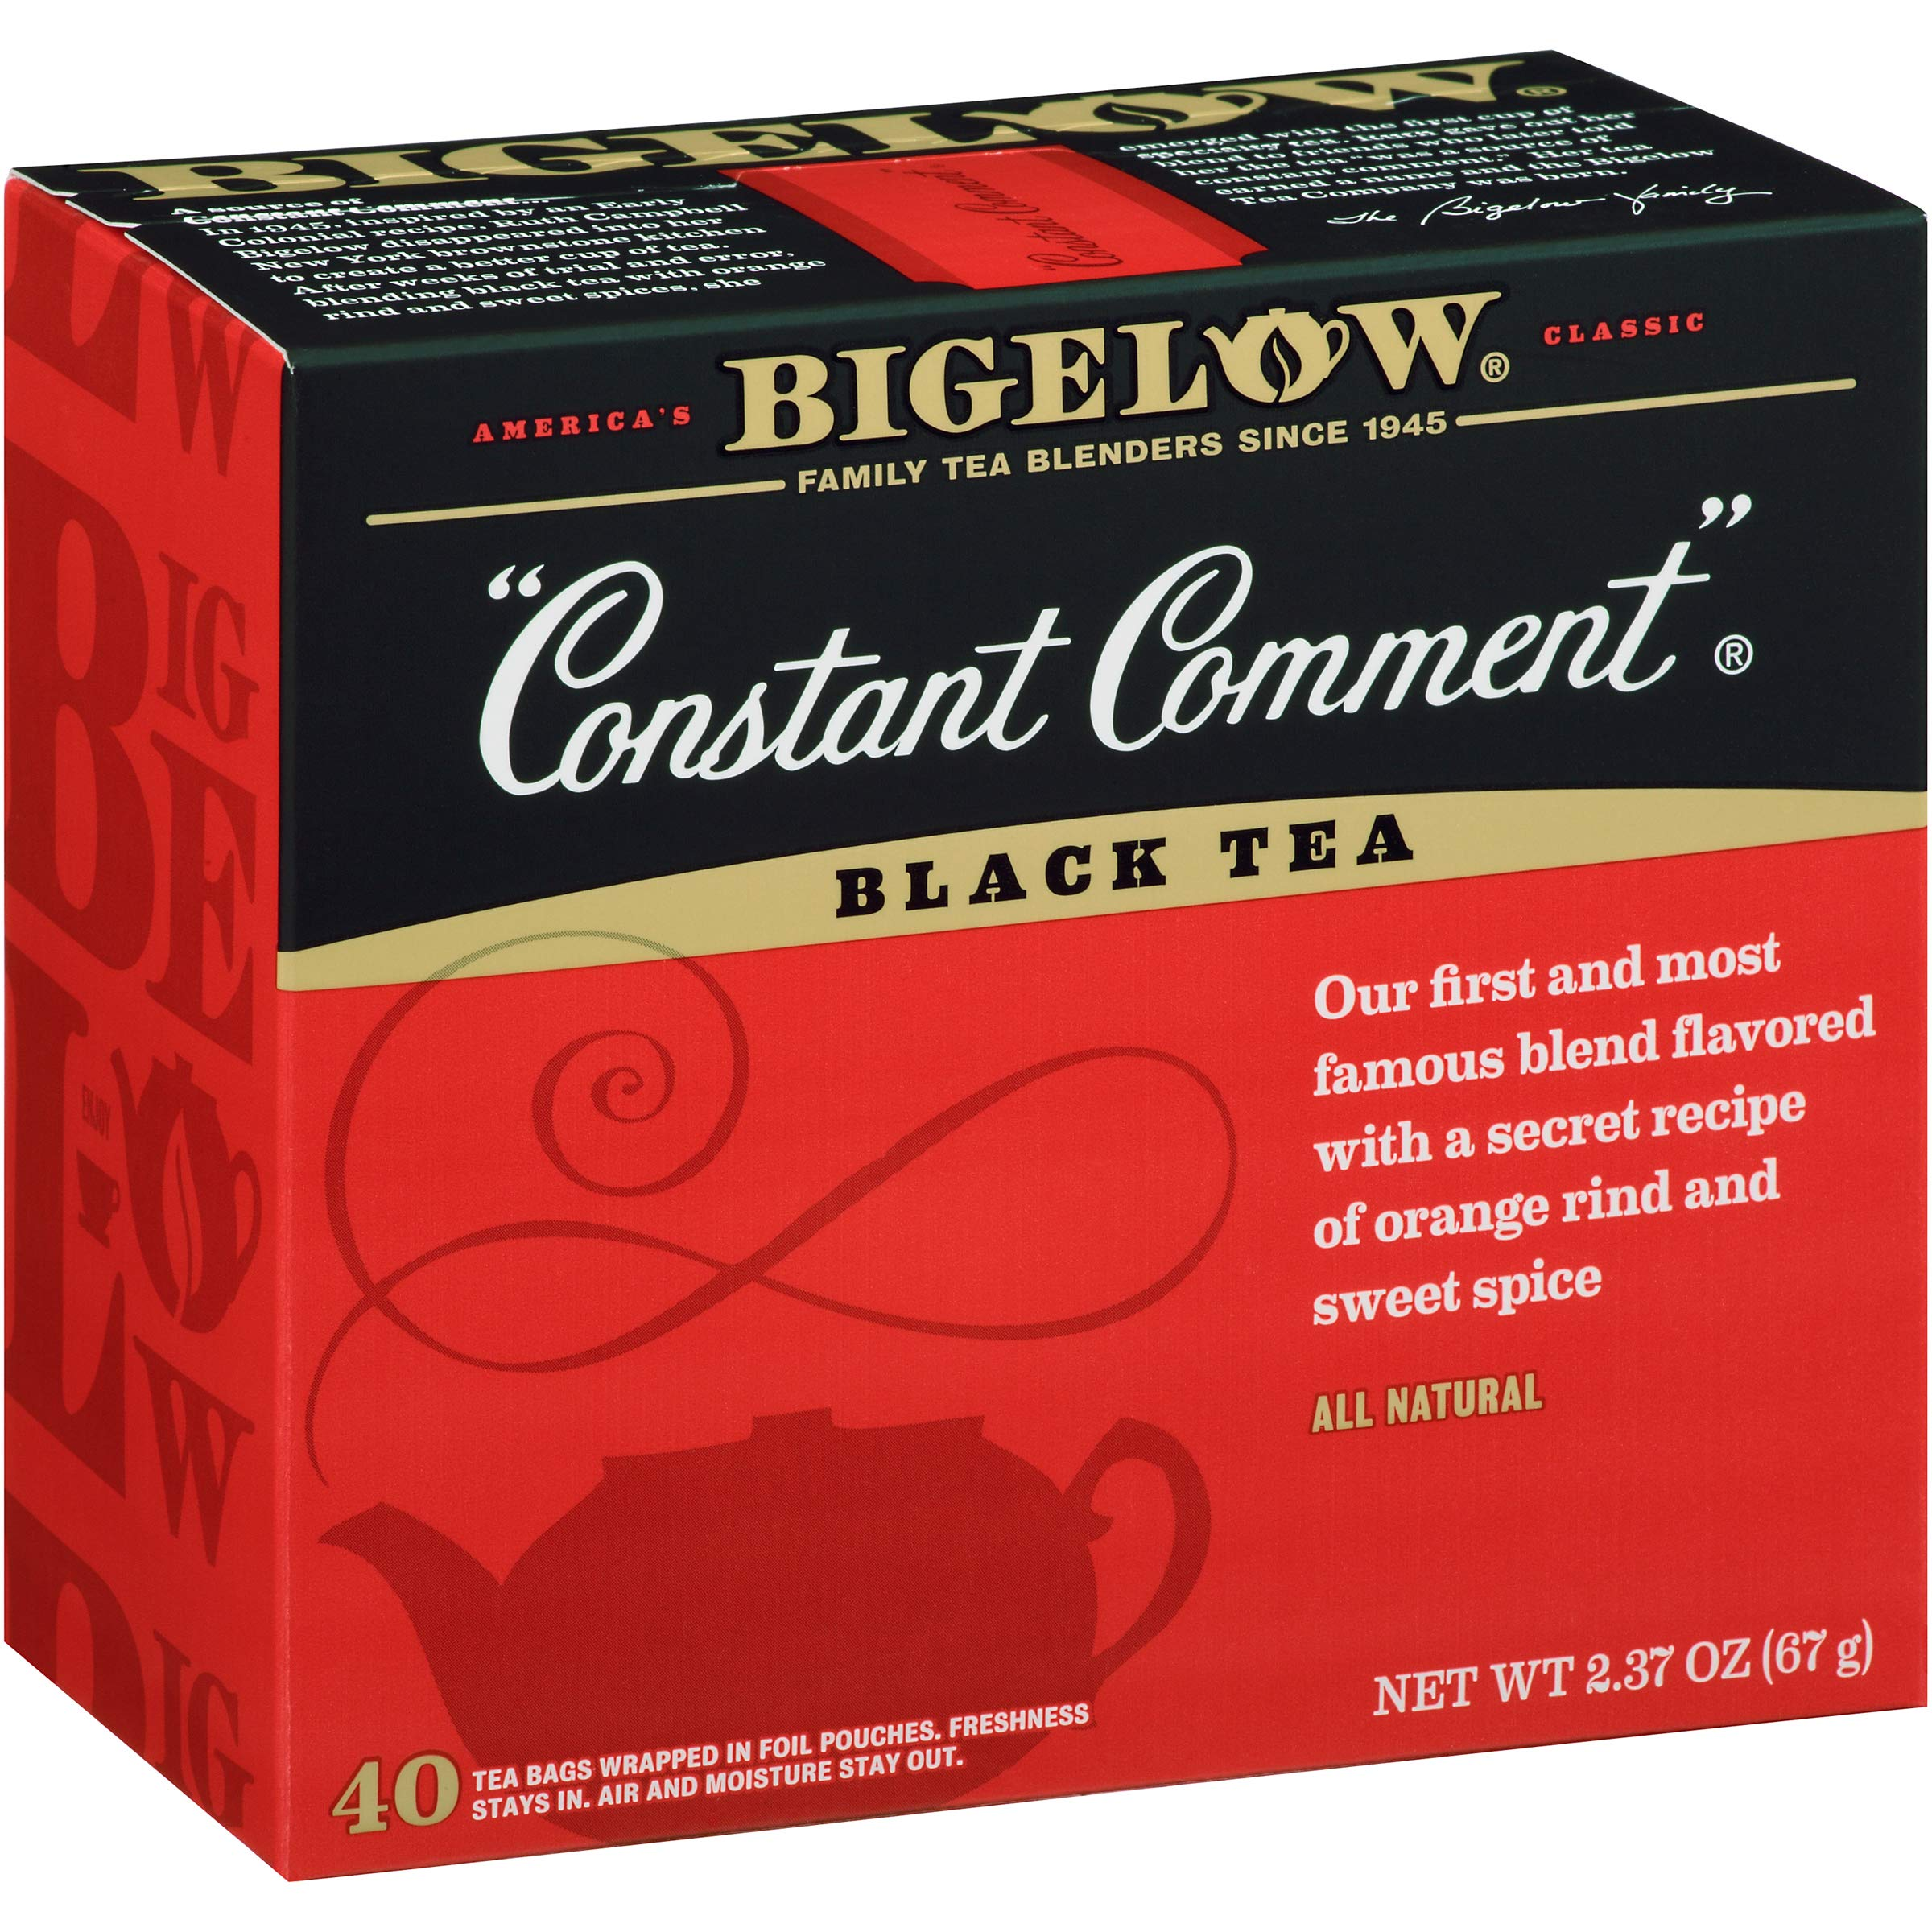 Bigelow Constant Comment Tea, 40 Count (Pack of 6) by Bigelow